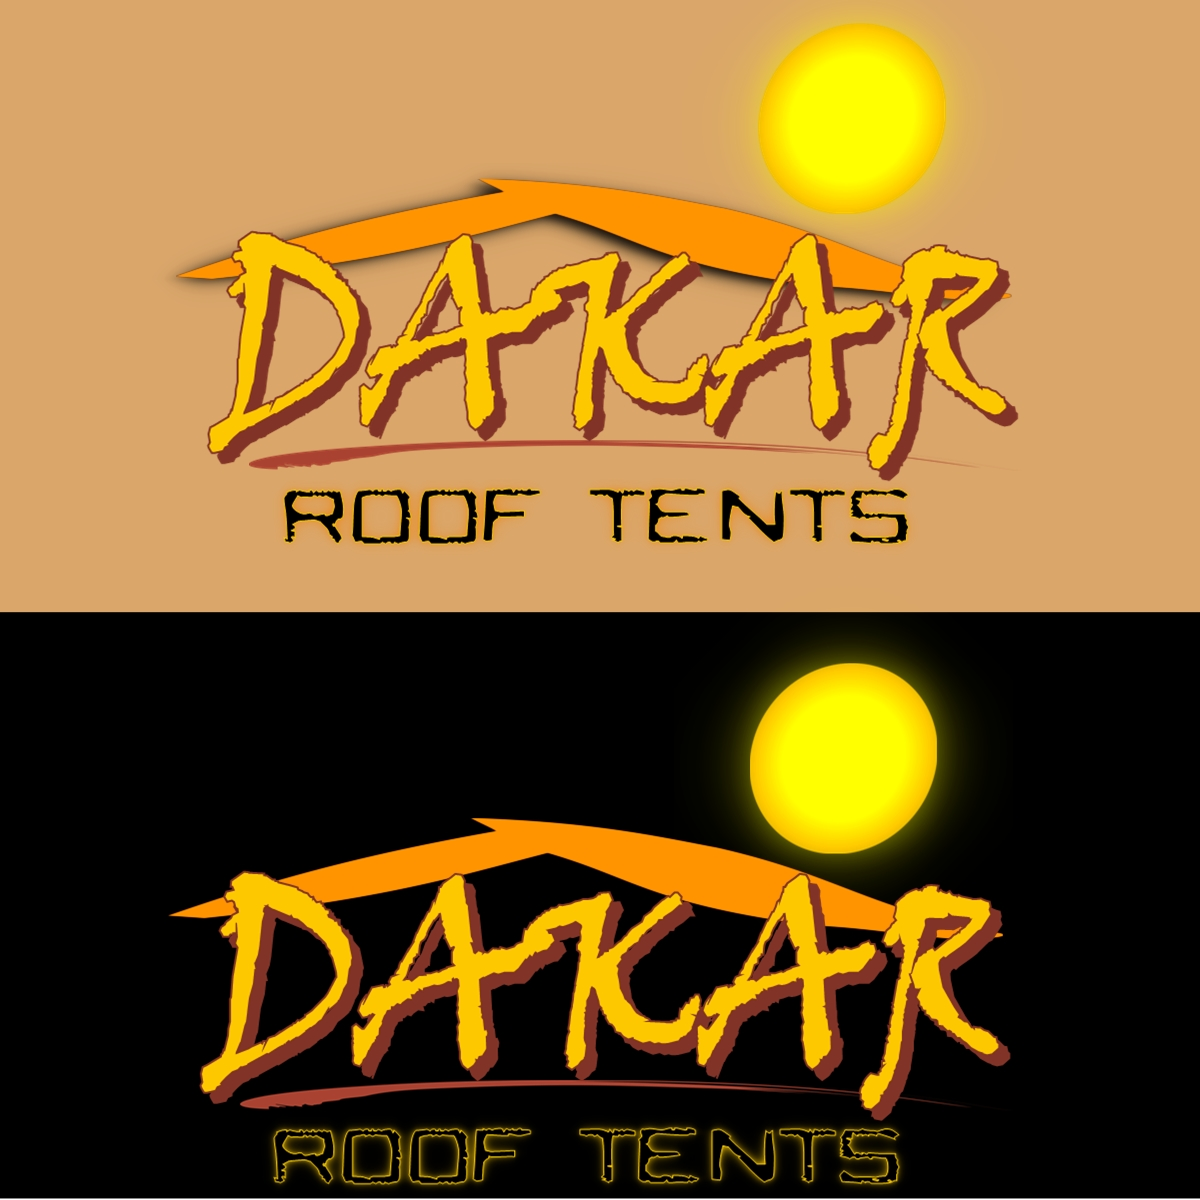 Logo Design by Joseph calunsag Cagaanan - Entry No. 65 in the Logo Design Contest Dakar Roof Tents.